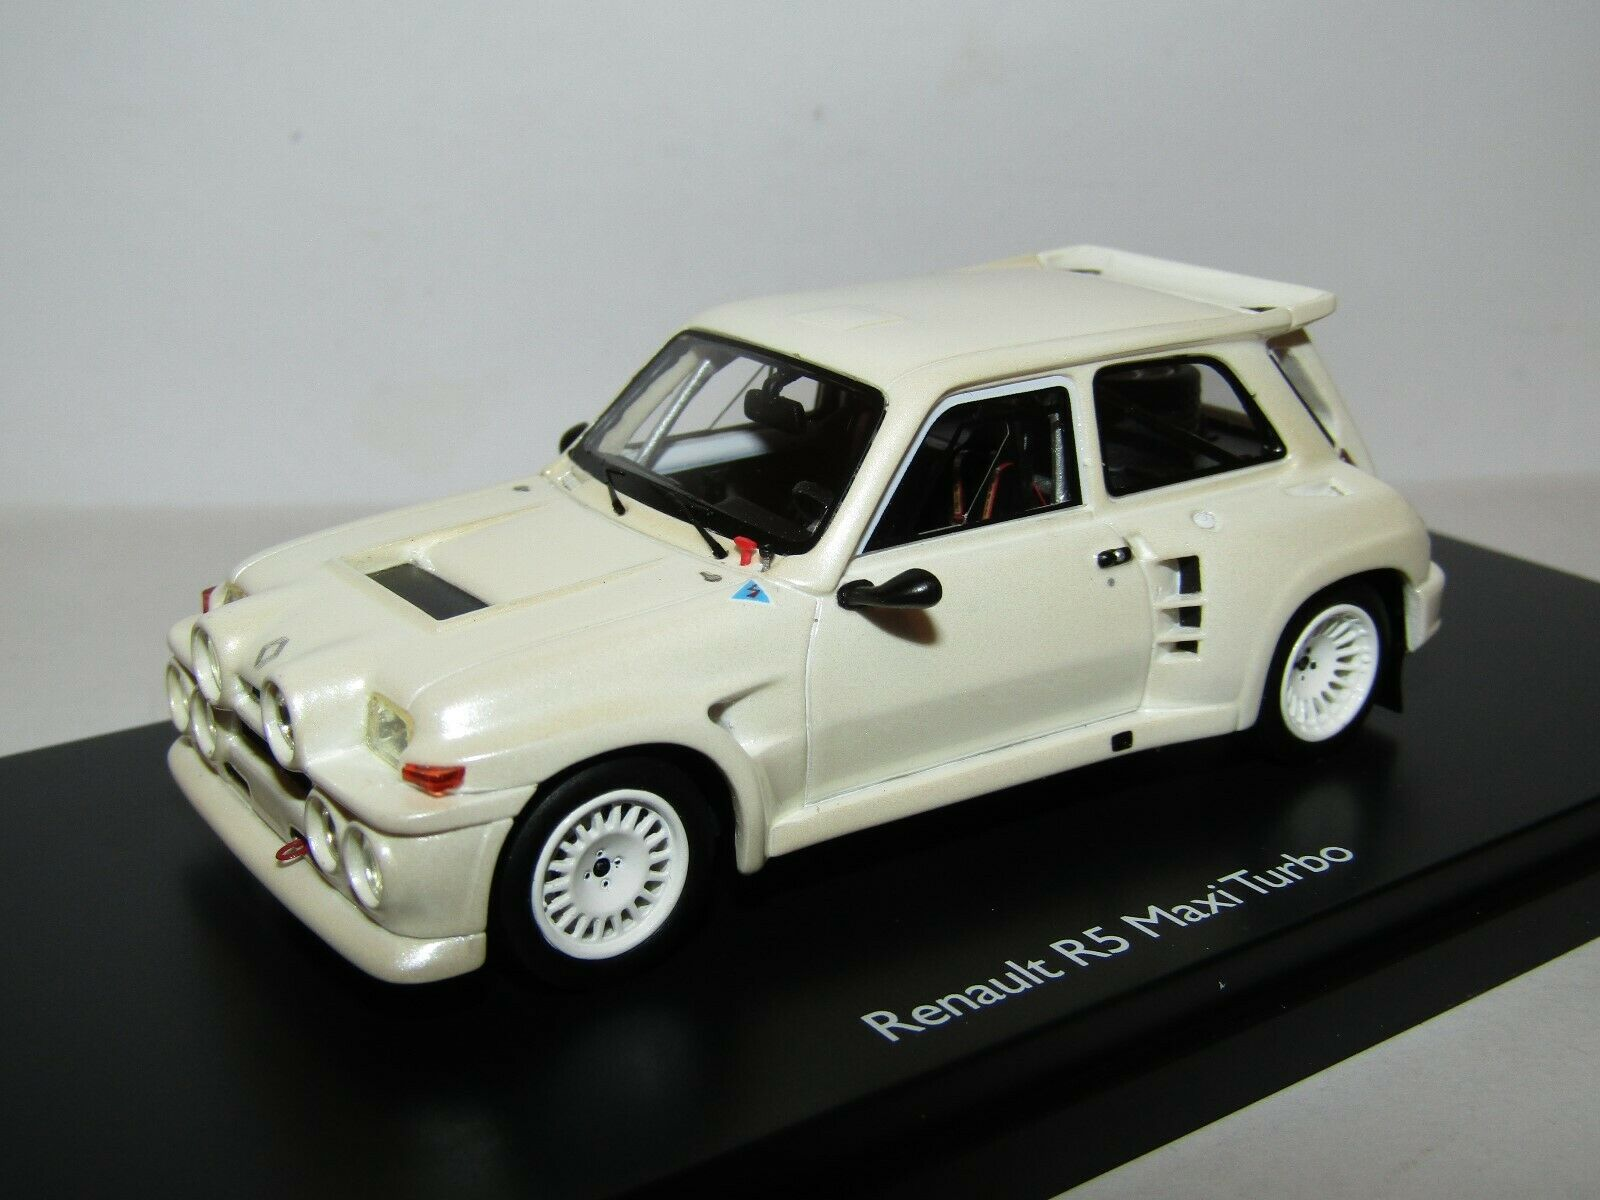 SCHUCO RESIN RENAULT R5 MAXI TURBO PEARL  blanc 1 43 LIMITED EDITION OF 500  remise élevée